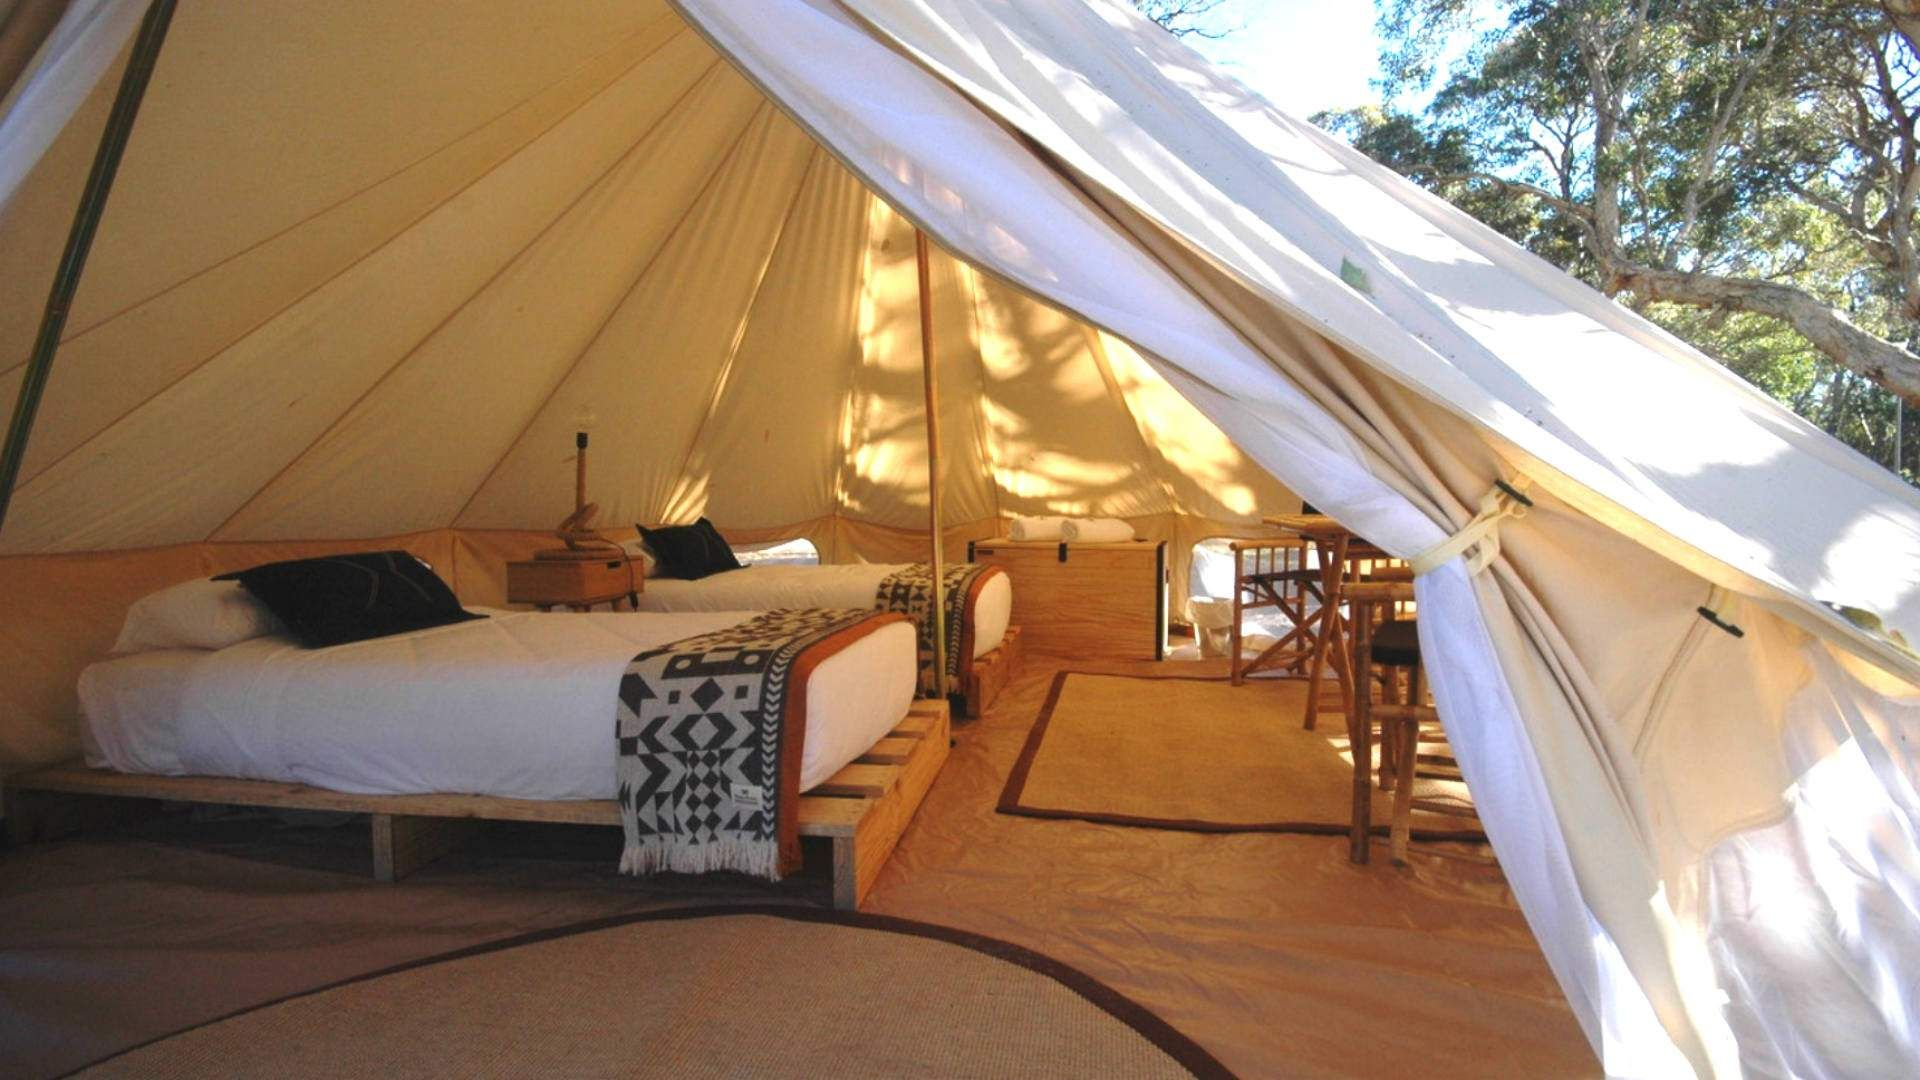 Best Glamping Ideas Trailer , If you choose to use a tent